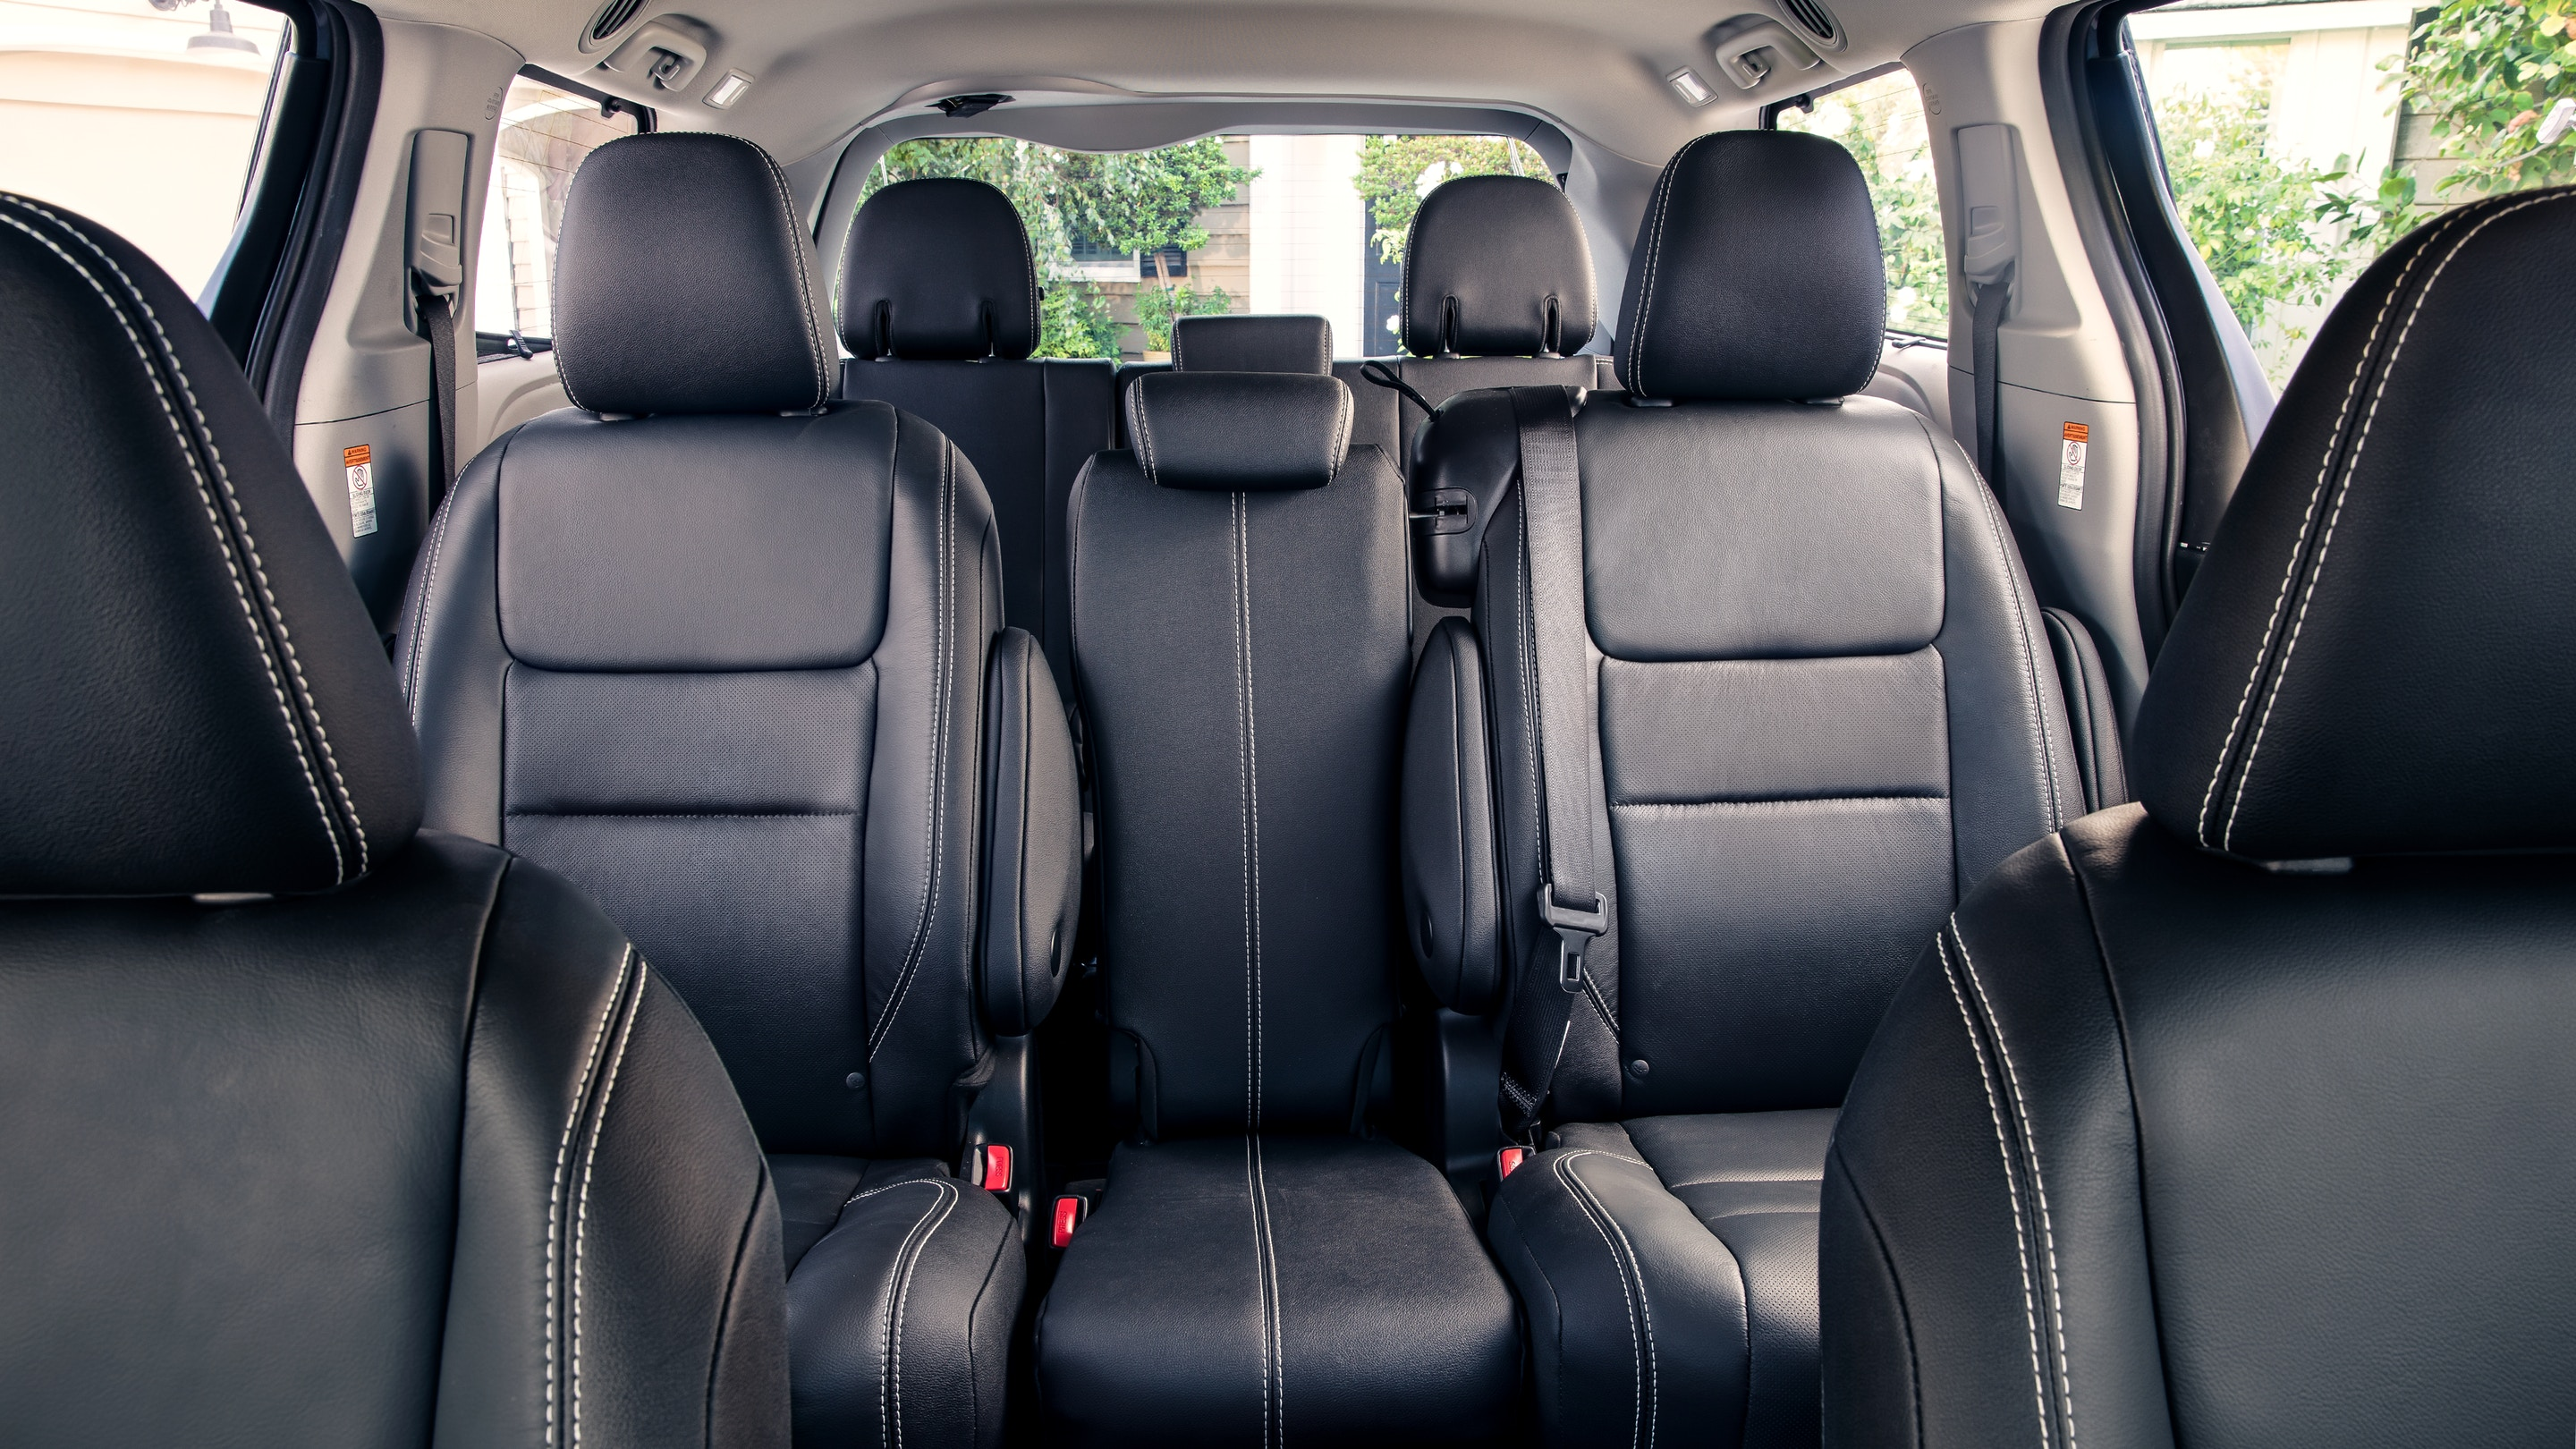 2019 Toyota Sienna Seating